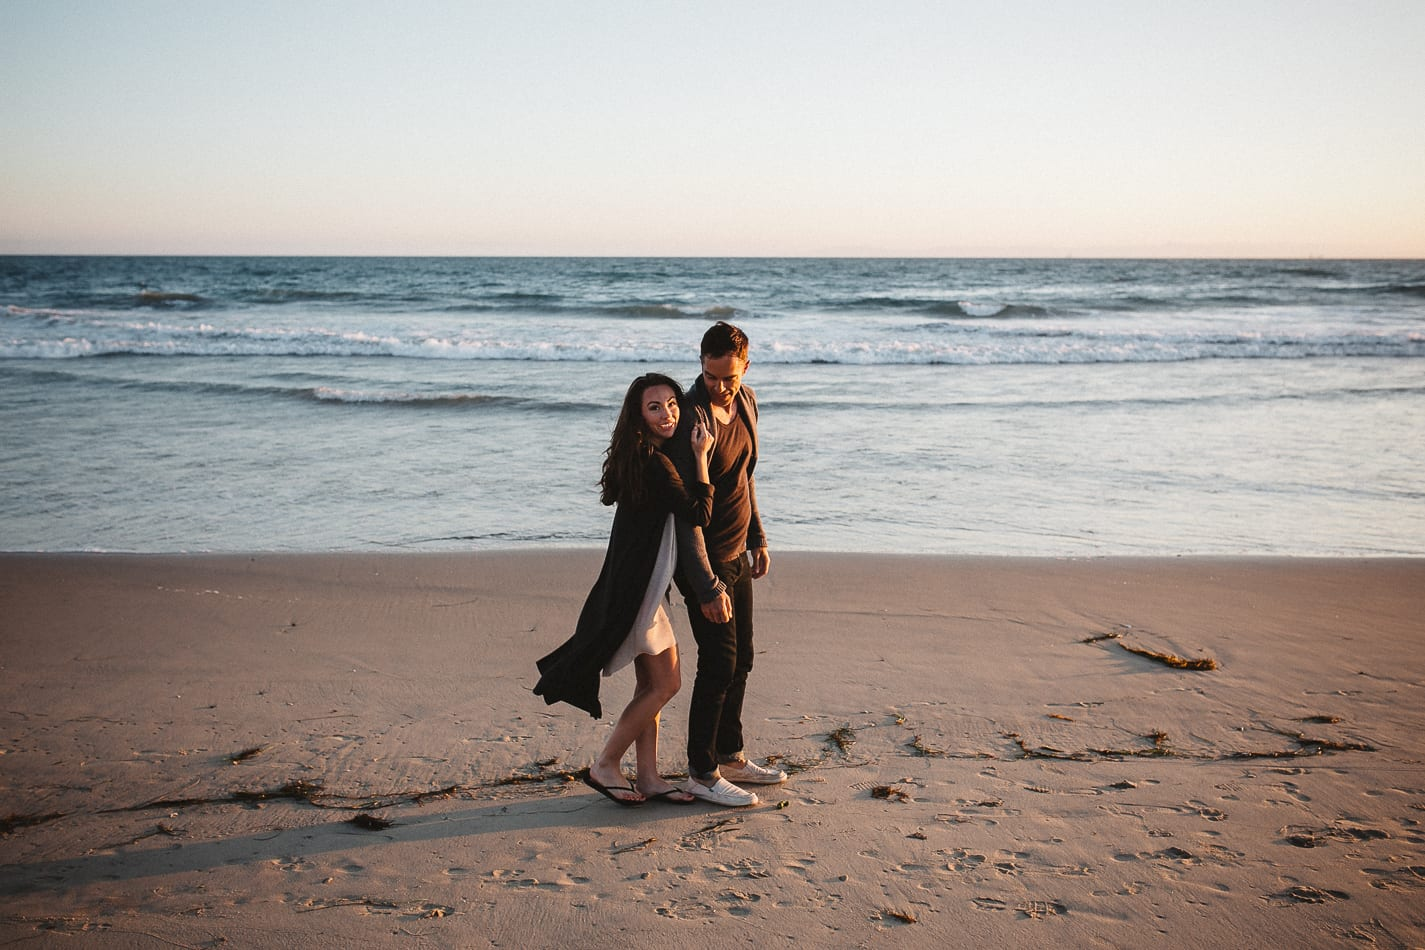 jason-alyssa-huntington-beach-california-engagement-photographer-18